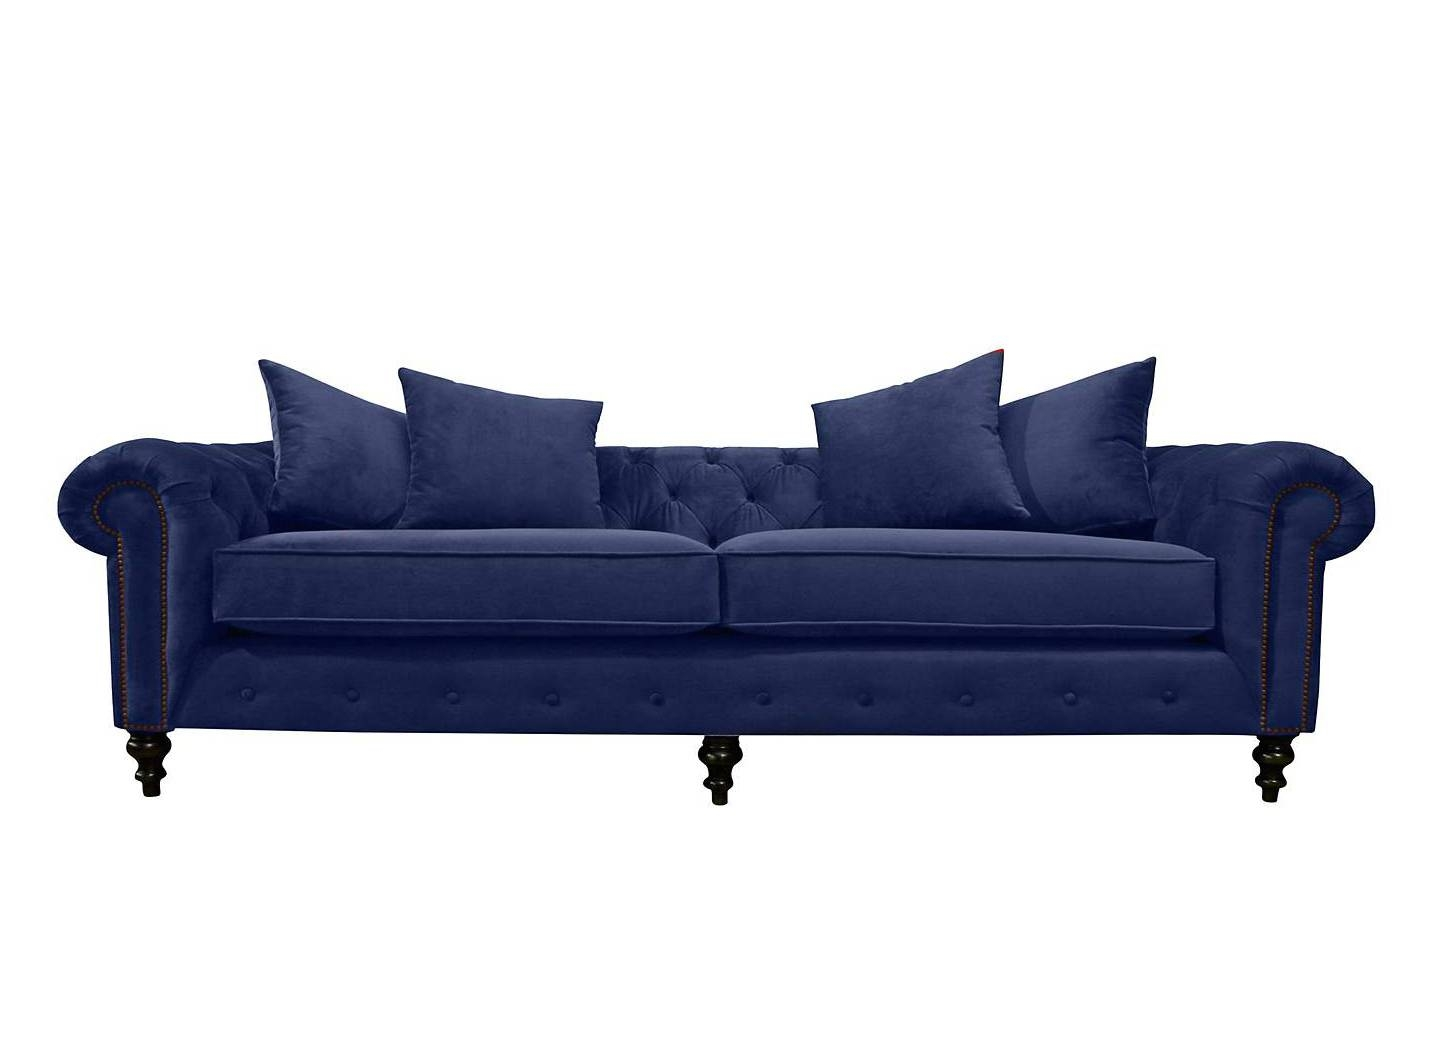 20 Best Blue Sofas - Stylish Blue Couch Ideas for Blue Sofas (Image 2 of 15)